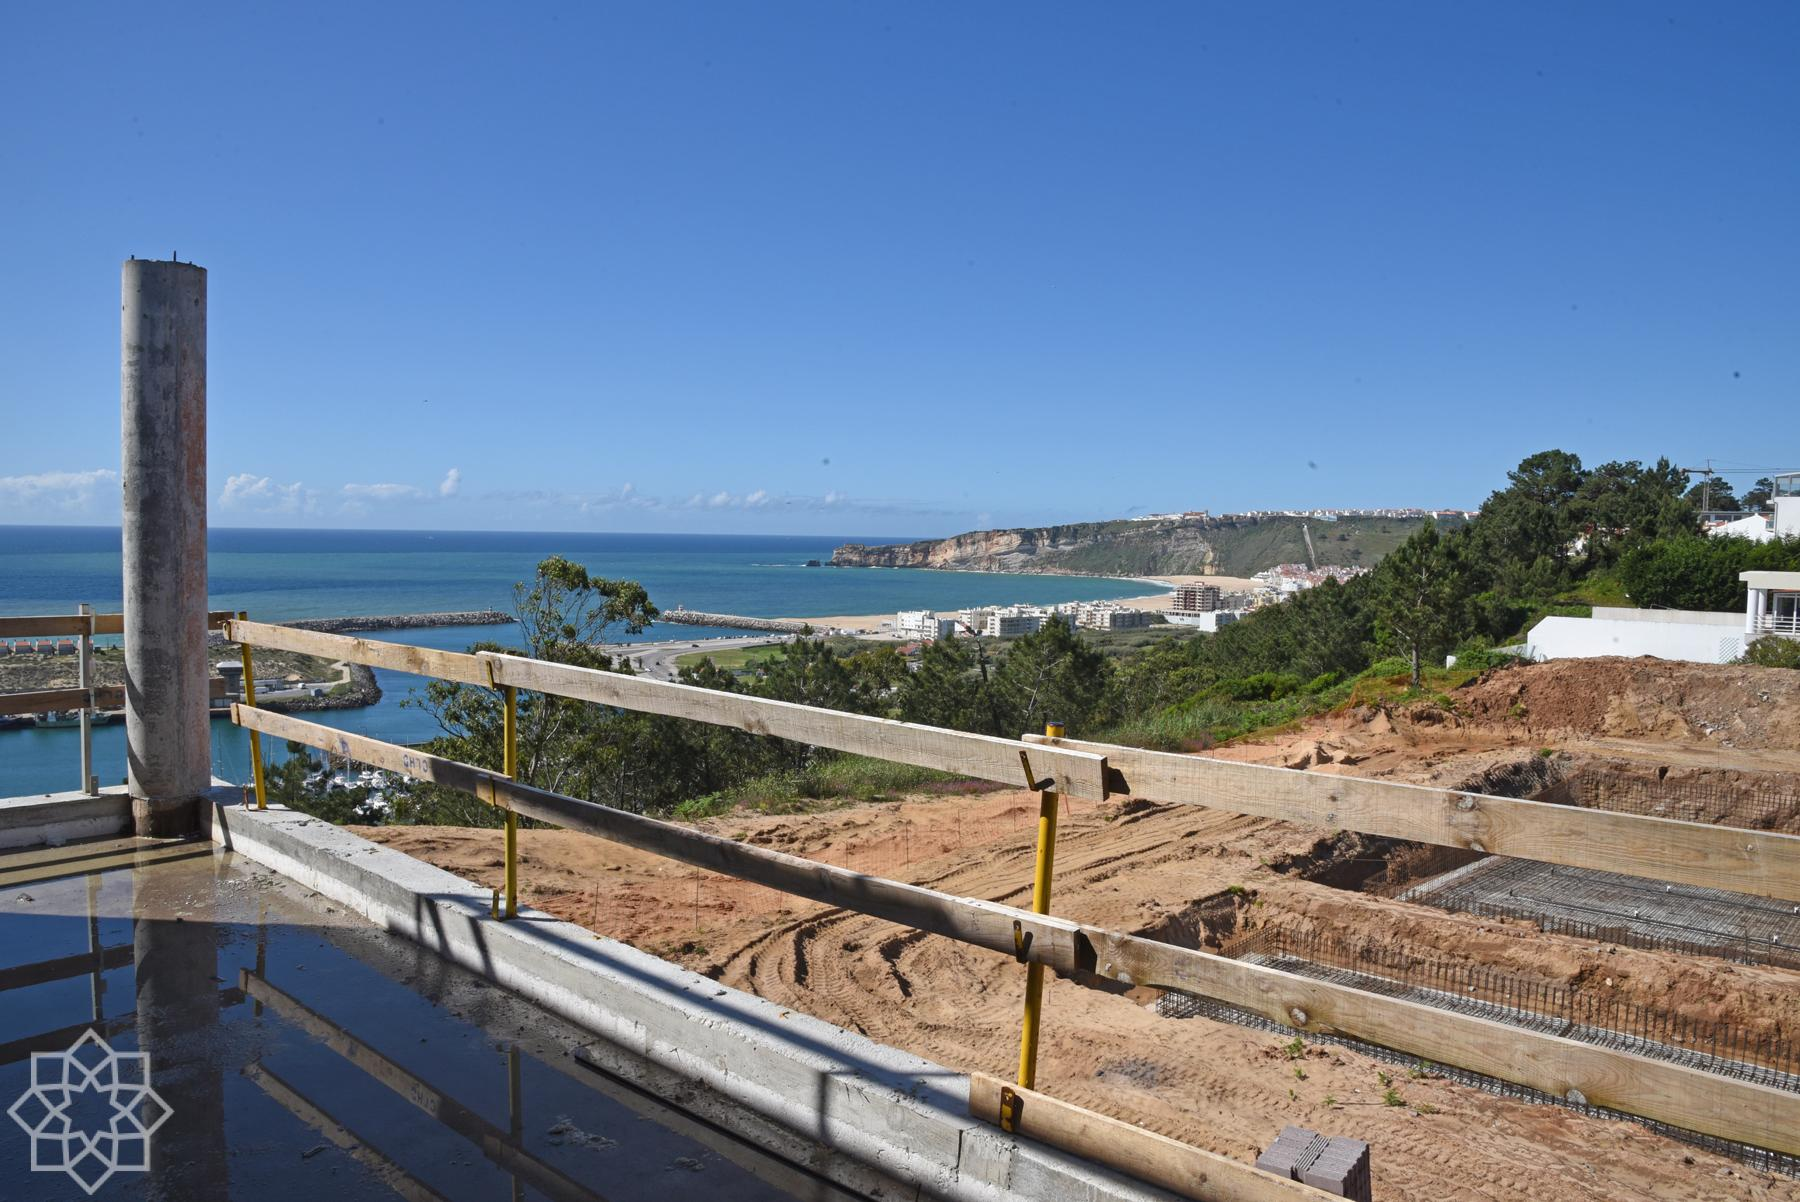 View to the harbor, the beach, Nazaré and the lighthouse